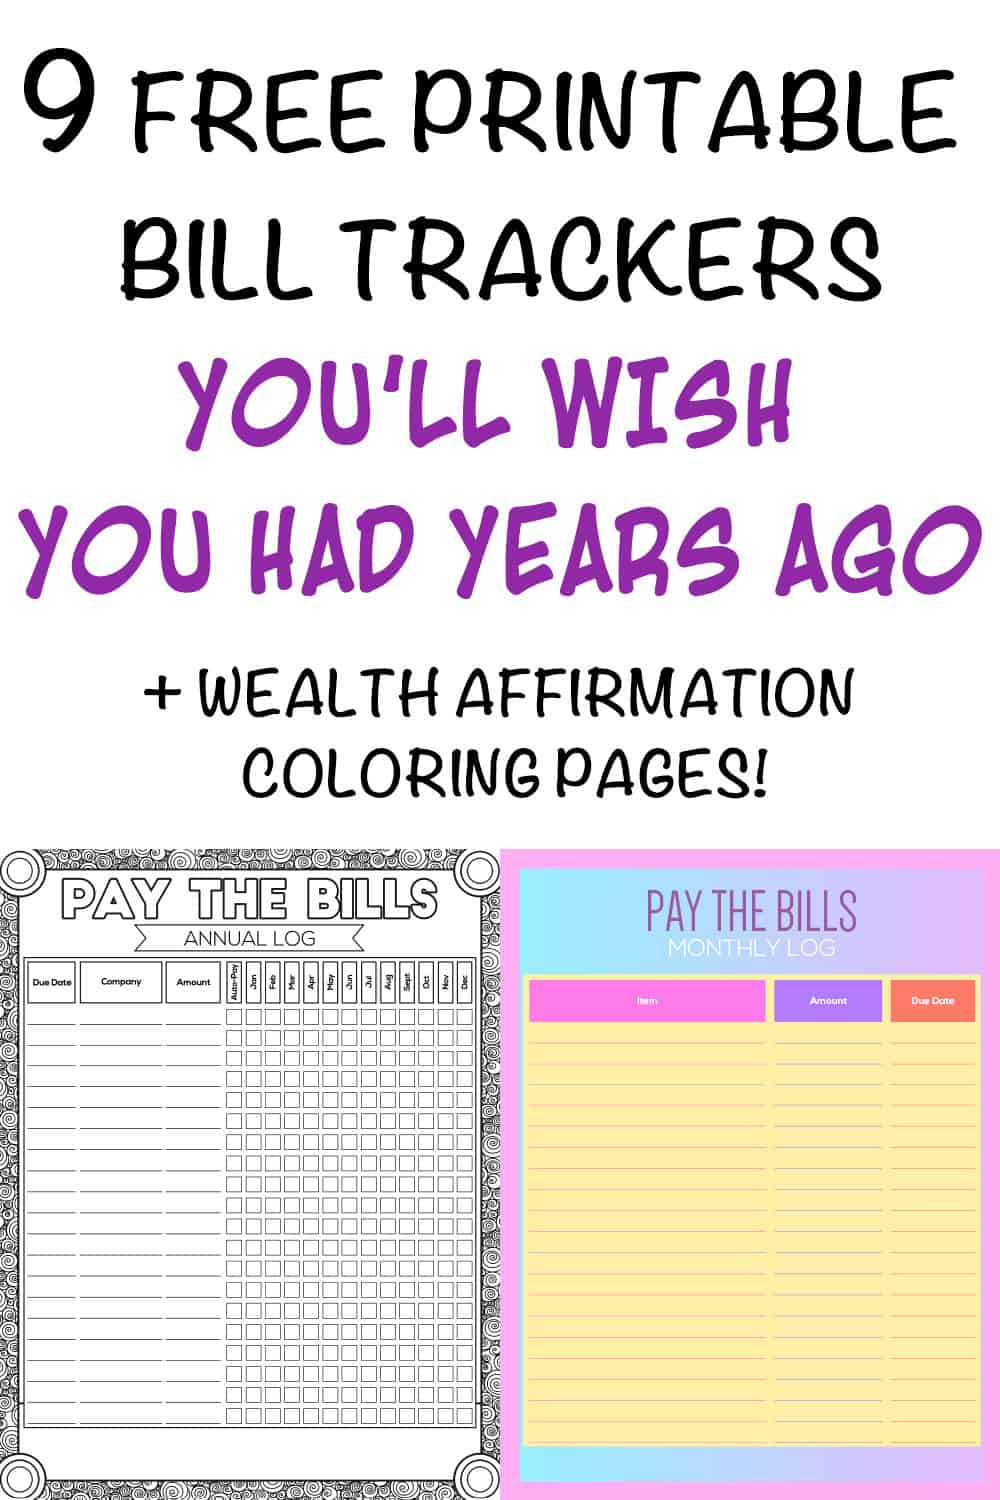 9+ Printable Bill Payment Checklists And Bill Trackers pertaining to Bill Payment Calendar Printable